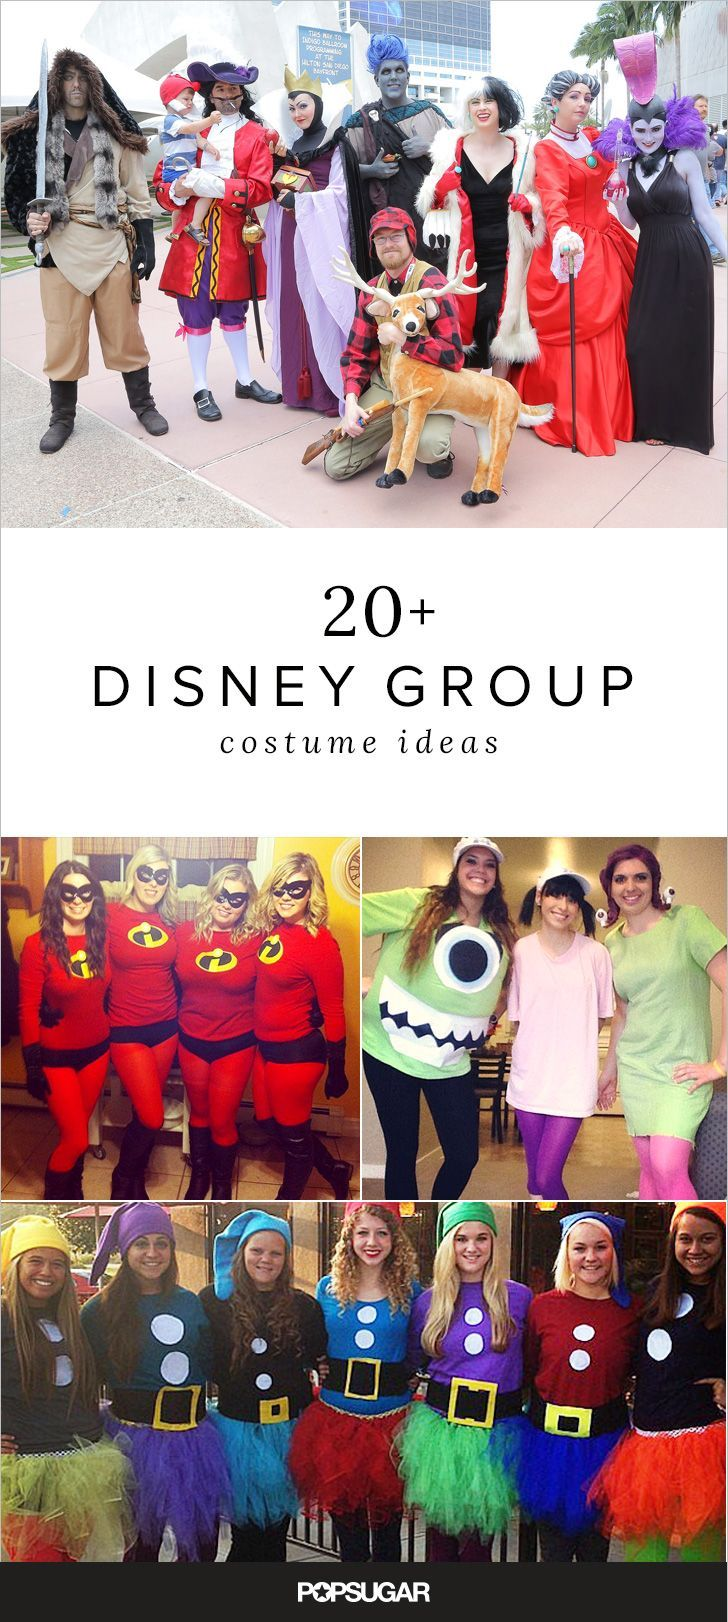 Want to take your Disney Halloween costume to the next level? This year, get a big group of friends and dress up as an entire movie!